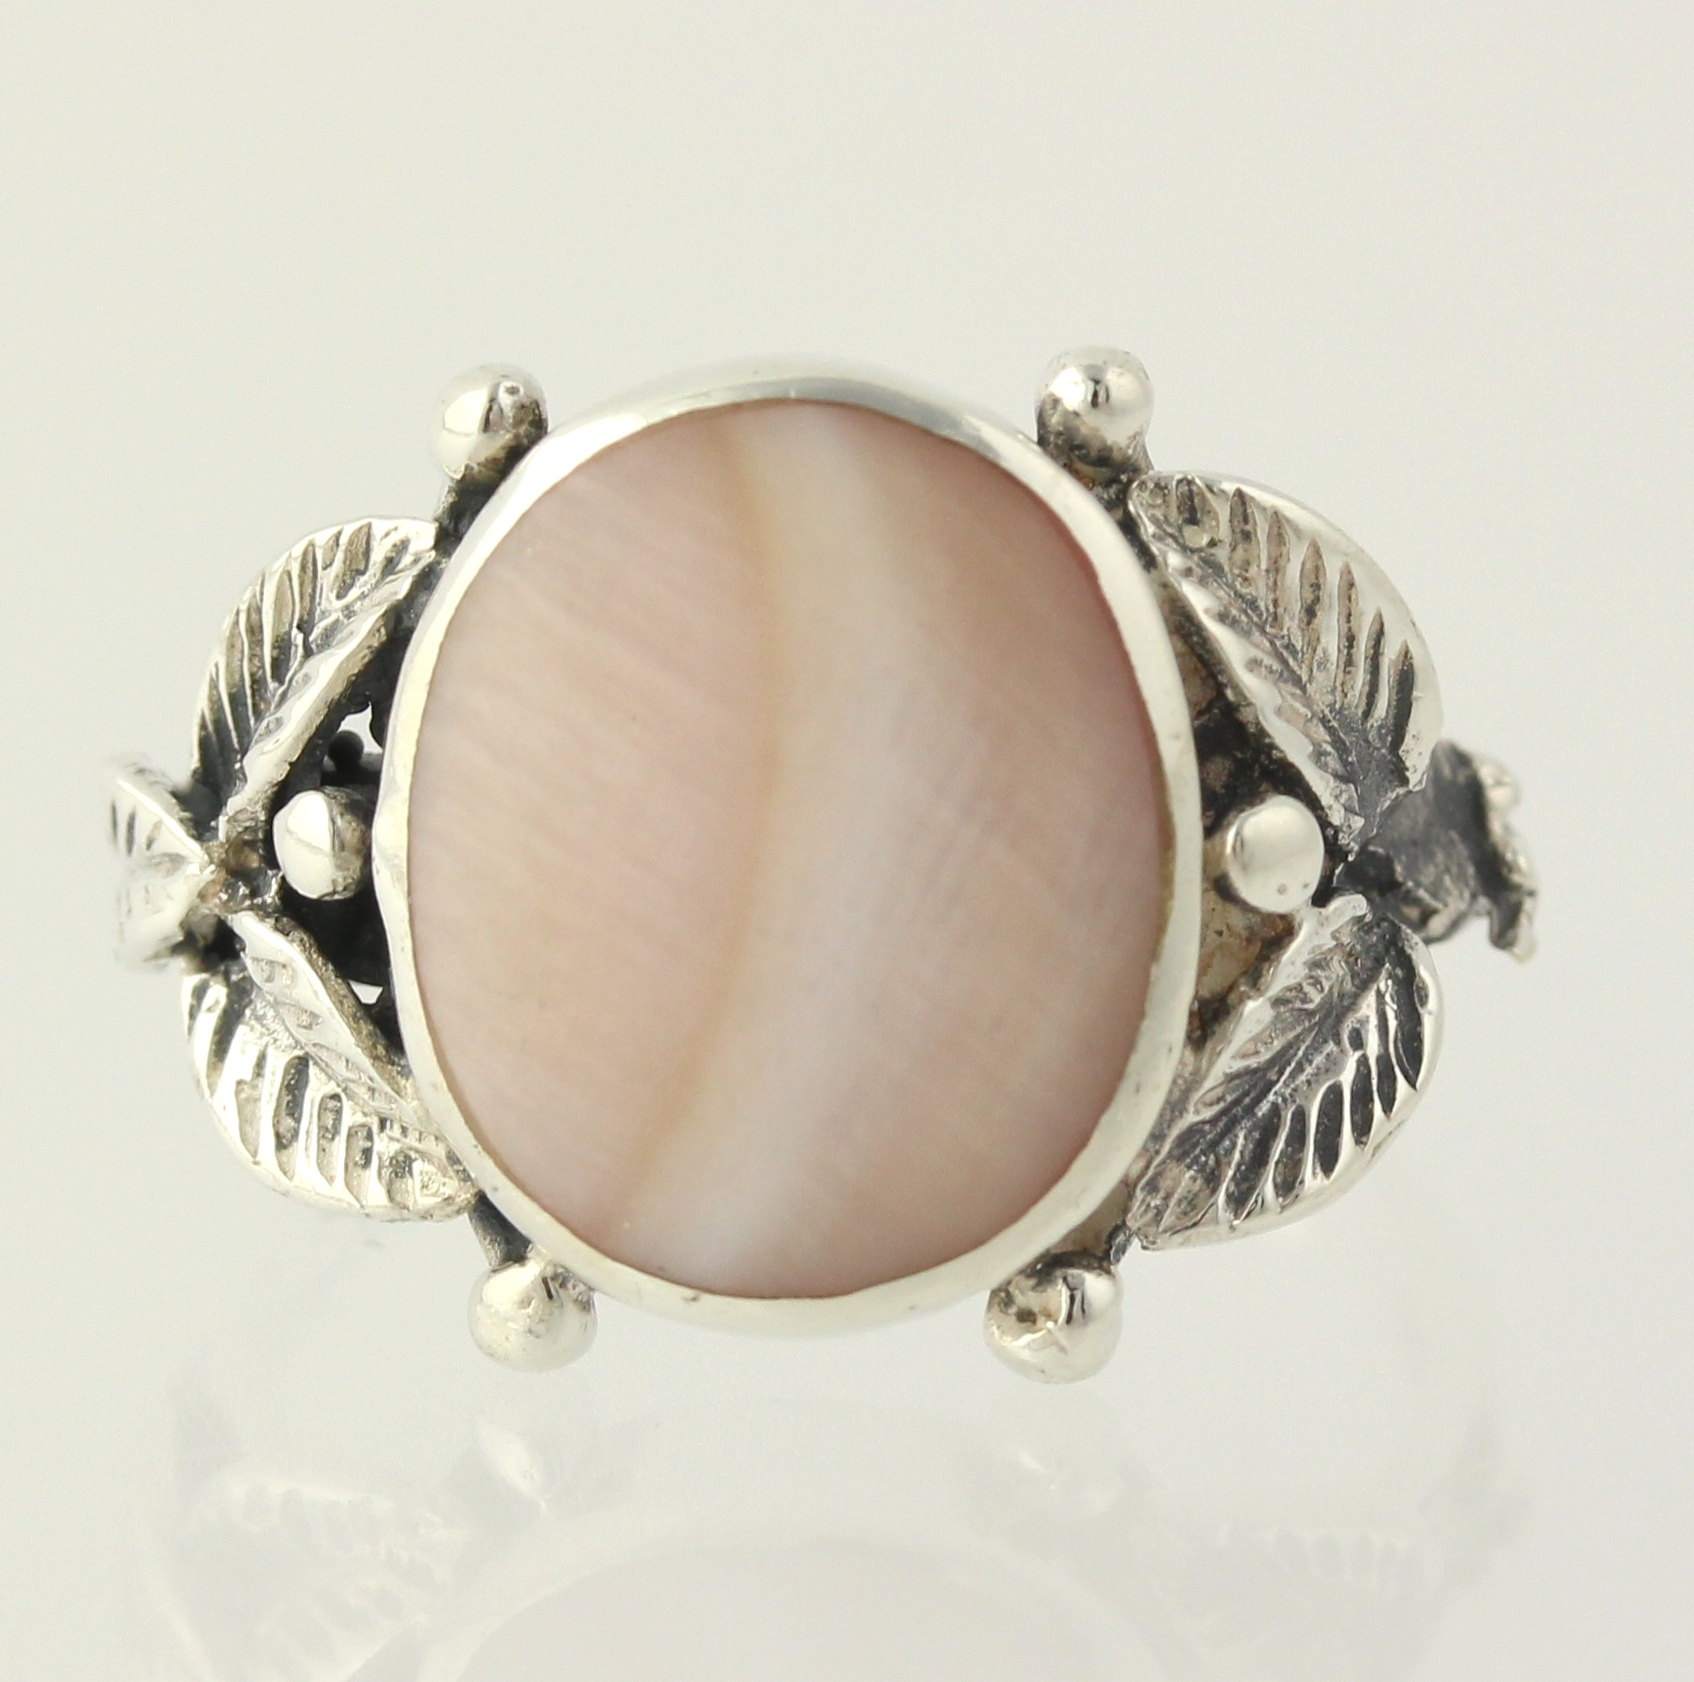 pink of pearl ring sterling silver floral 925